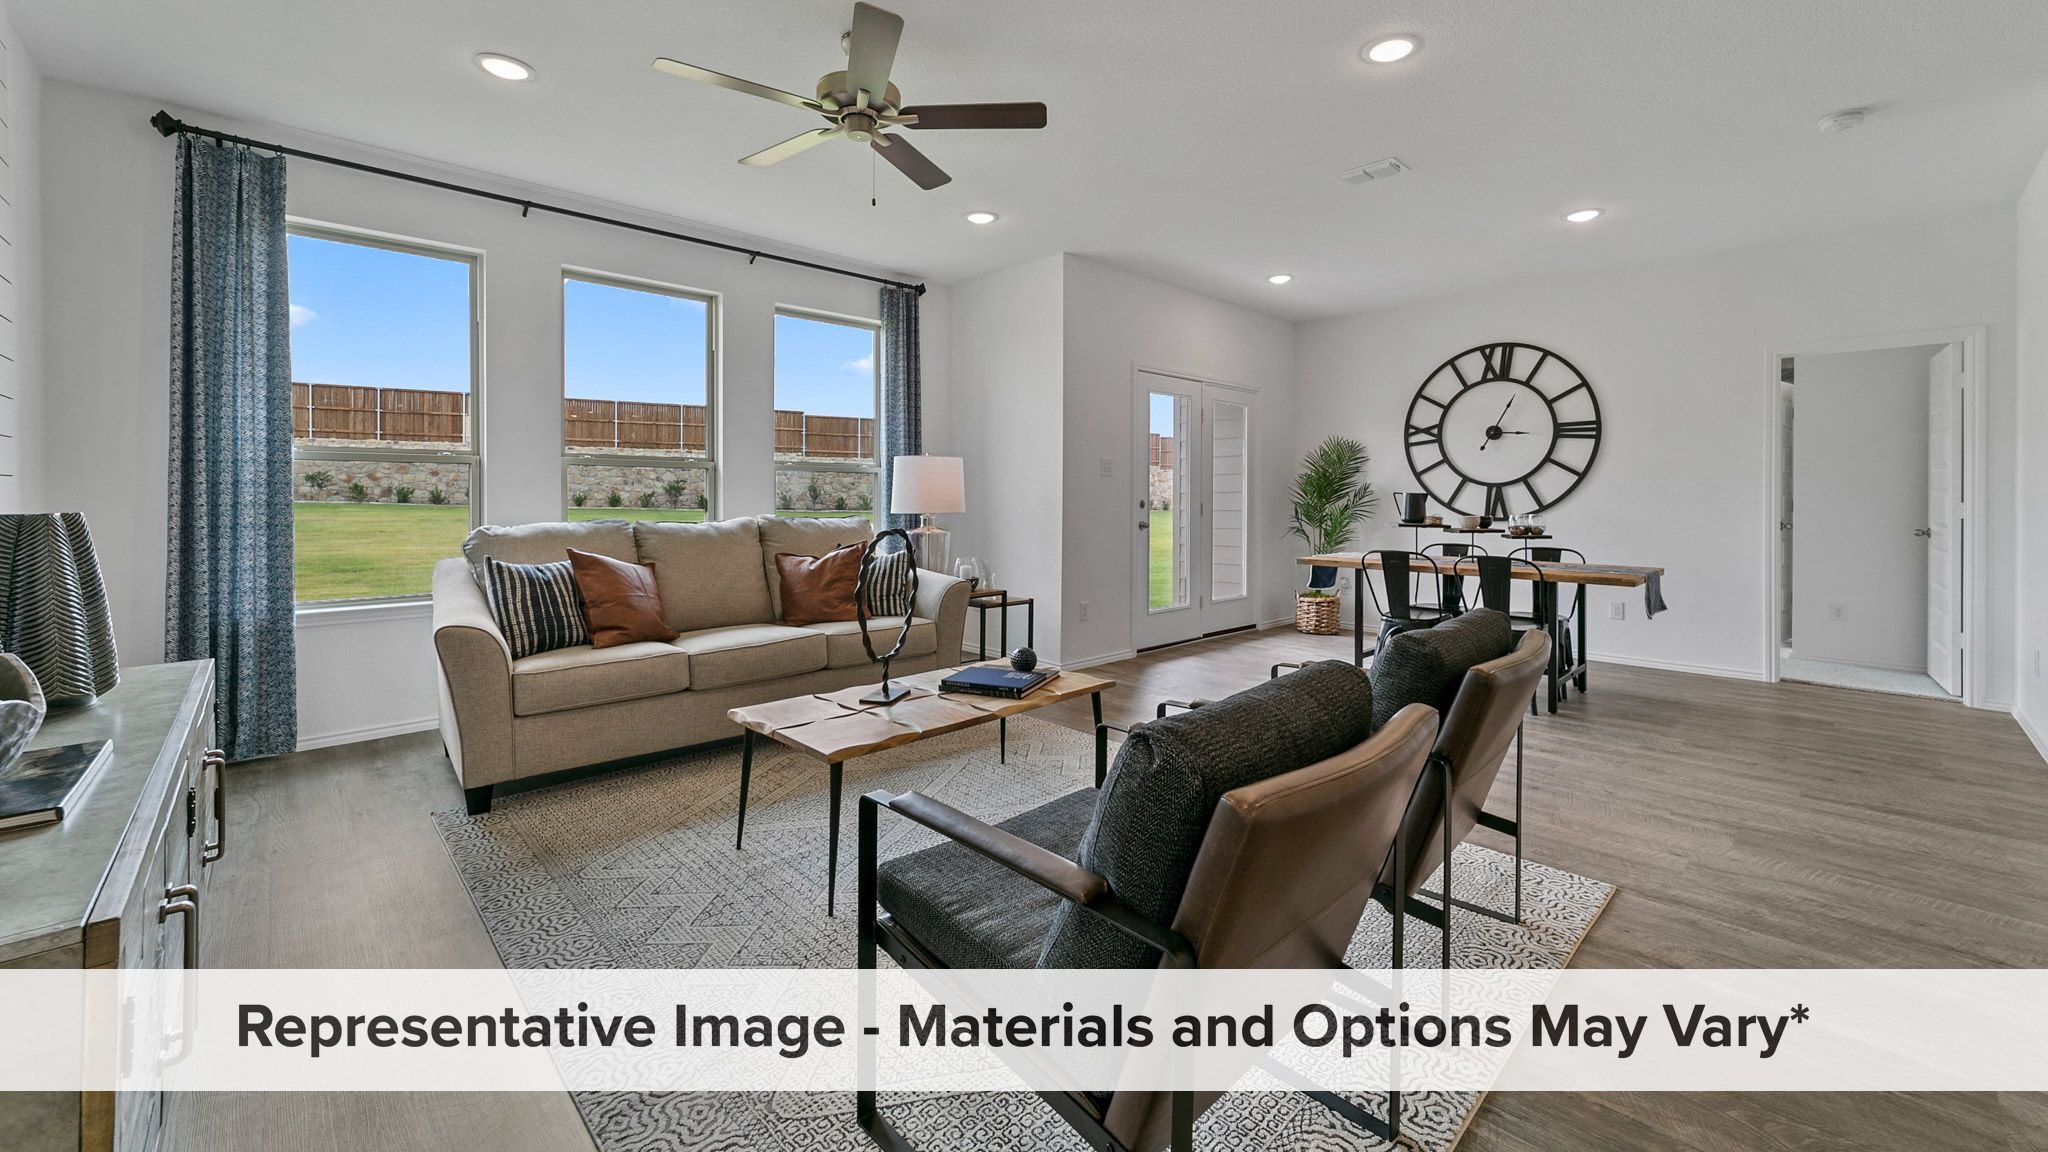 Living Area featured in the Cottonwood By HistoryMaker Homes    in Fort Worth, TX